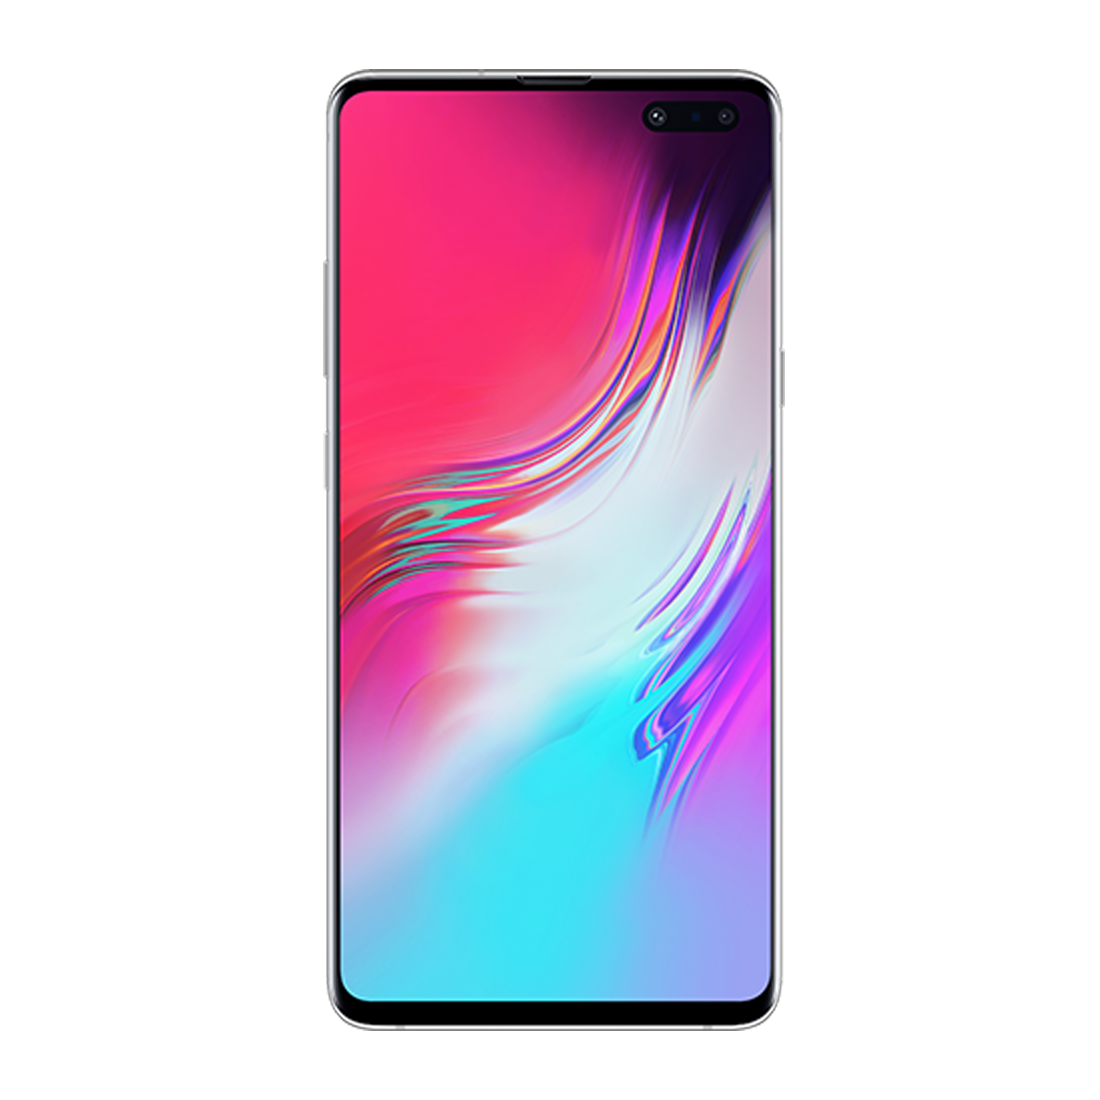 Samsung Galaxy S10 (5G, 256GB/8GB, Tel) - Crown Silver